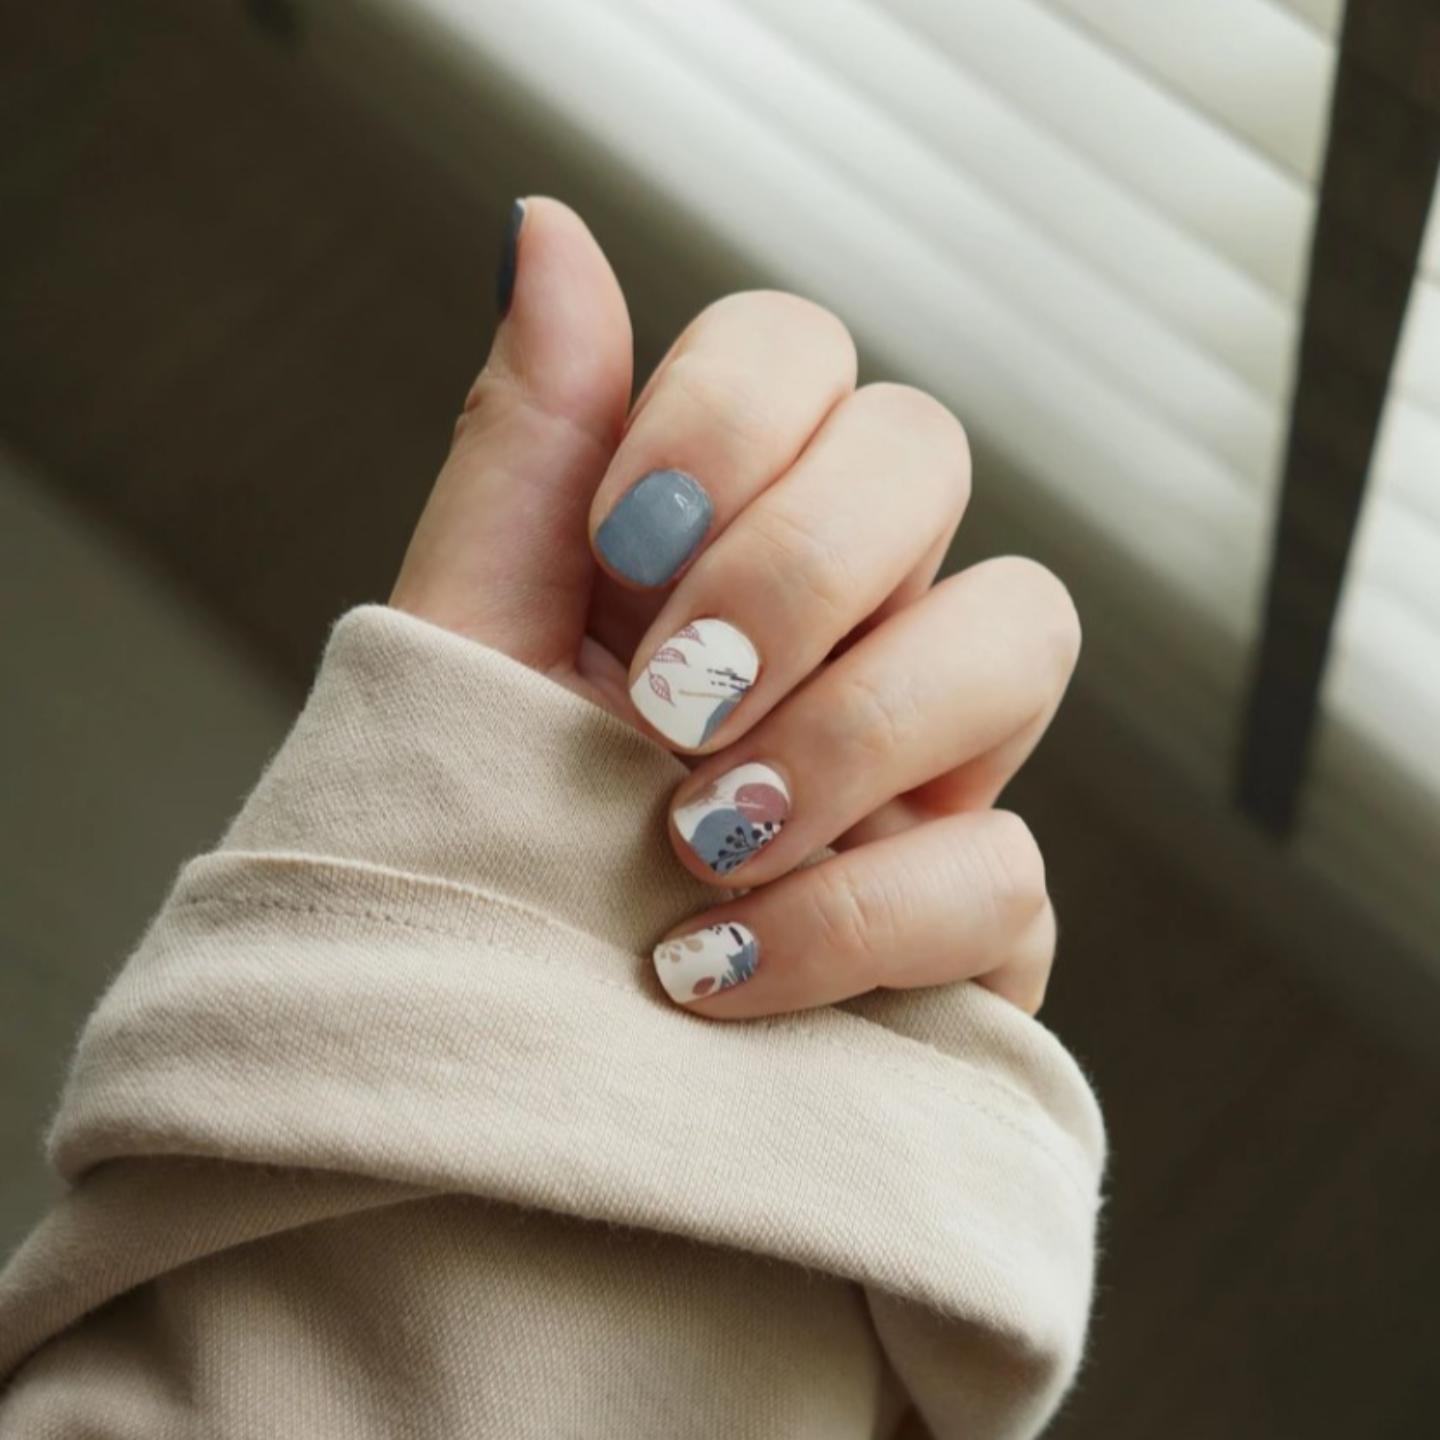 KEEP CALM AND BREATHE Nail Wrap Freshly Wrapped